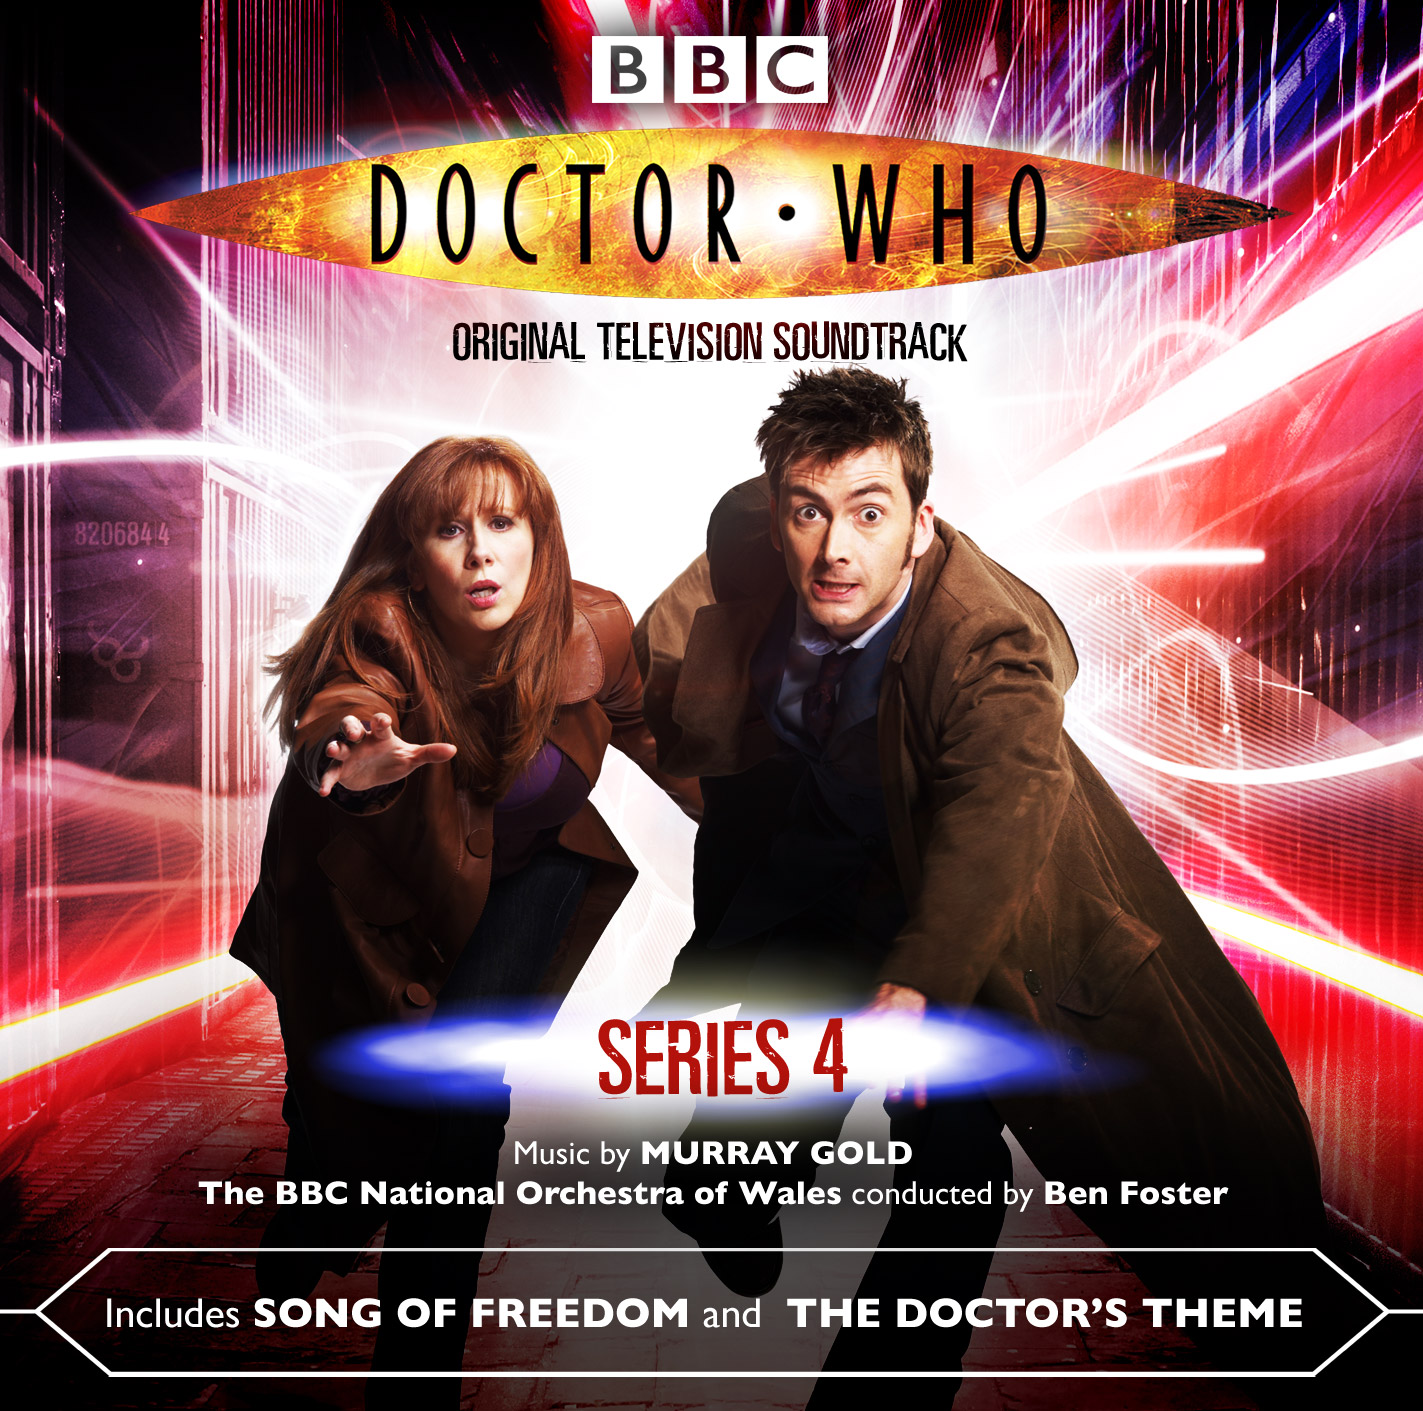 Doctor Who Series 4 Soundtrack